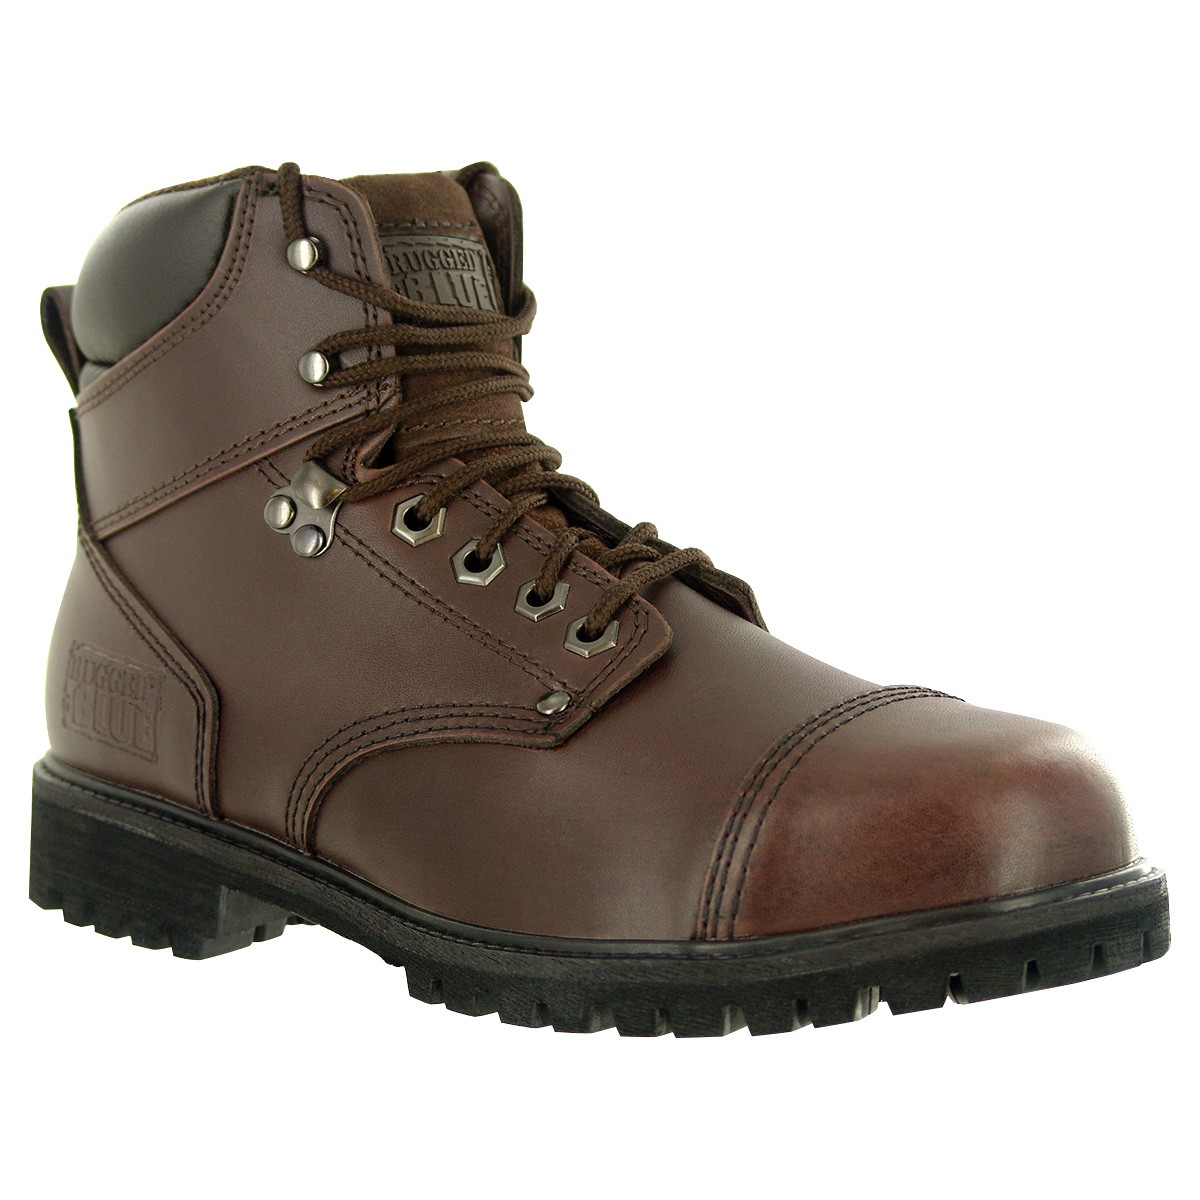 Rugged Blue RB2 Steel Toe Work Boot Dark Brown WP Steel Toe 10.5M